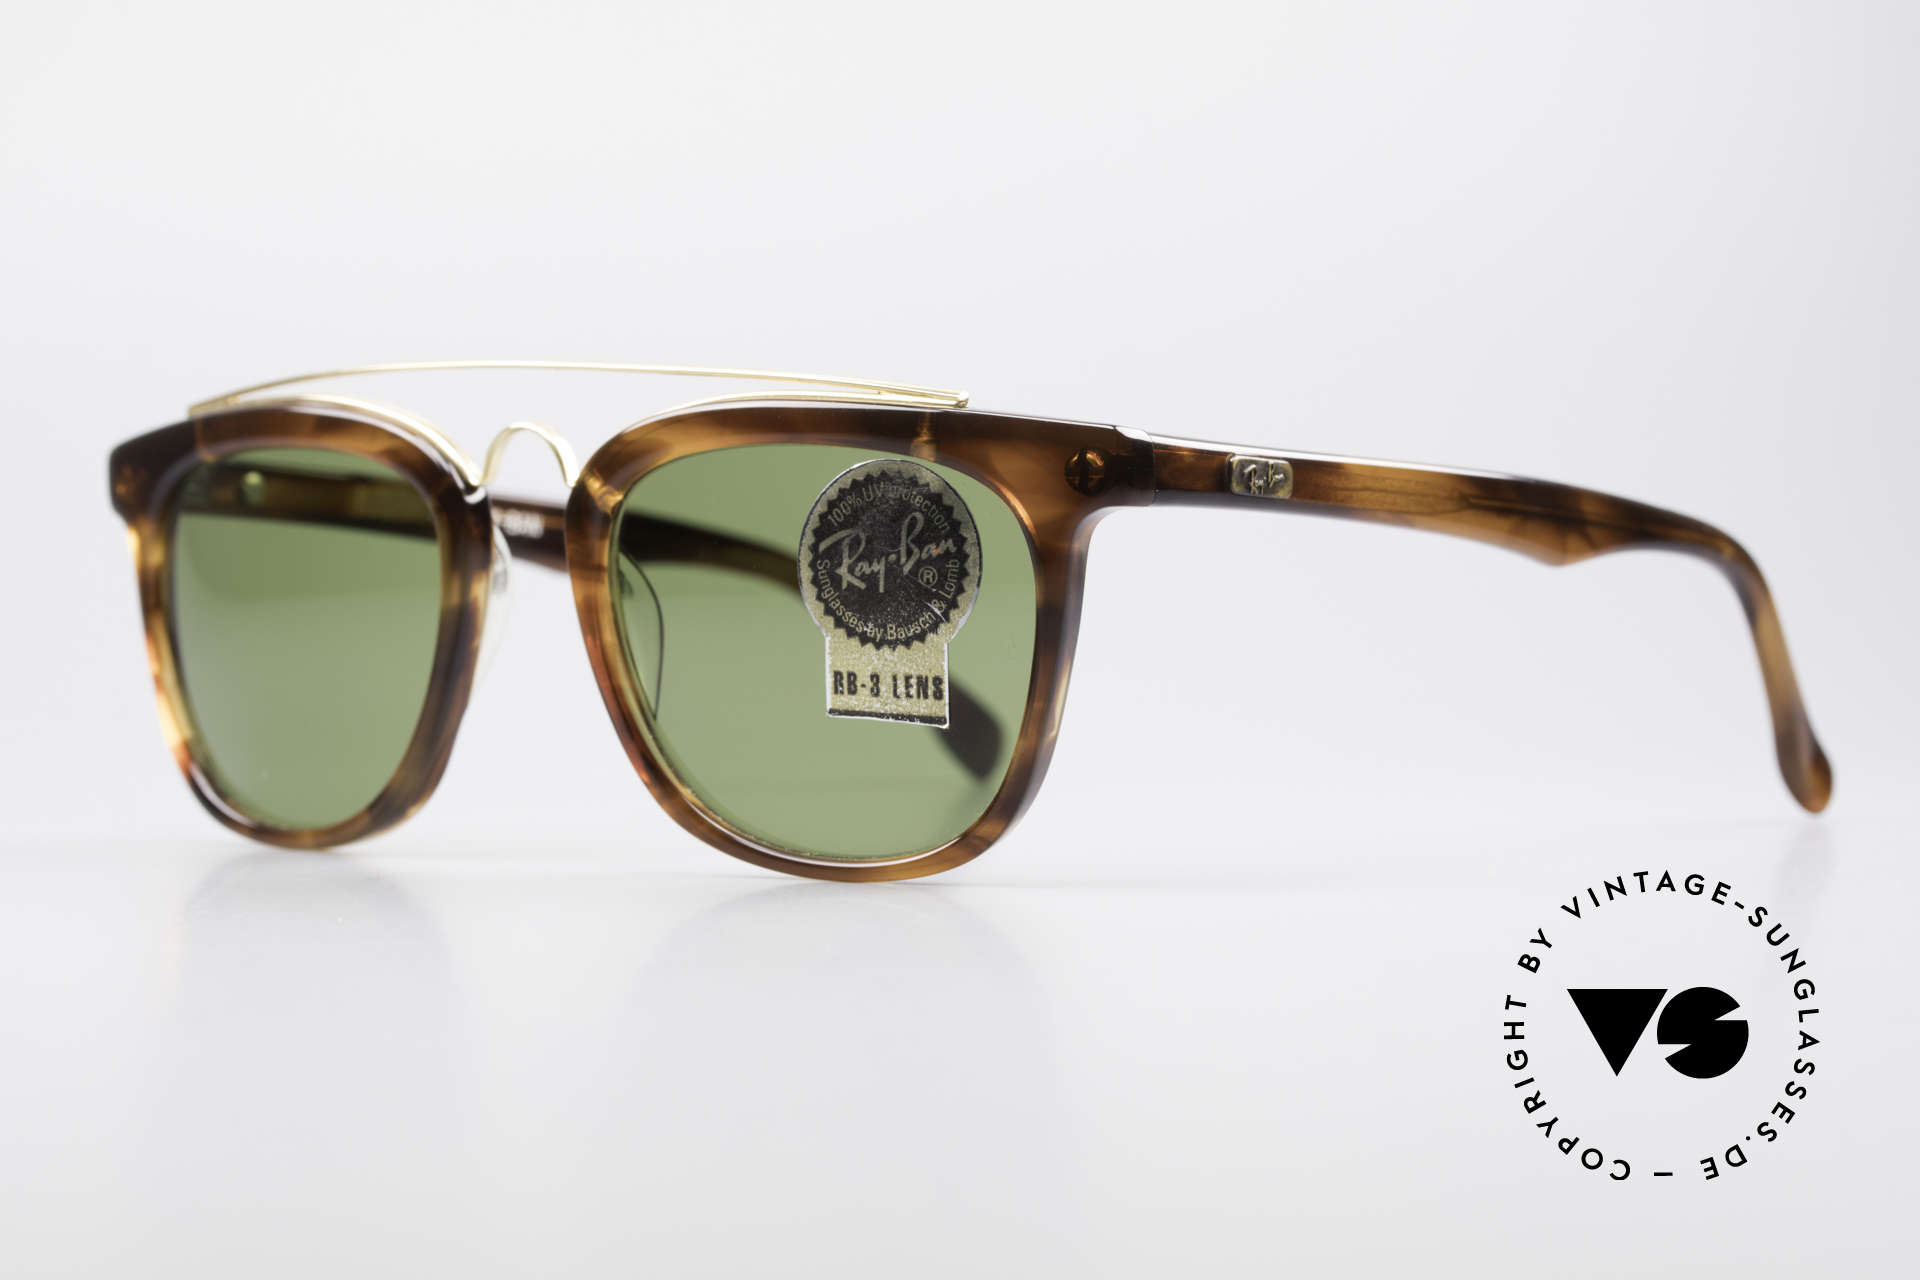 Ray Ban Gatsby Style 5 B&L Bausch Lomb Sunglasses, original (made by Bausch&Lomb), NO RETRO!, Made for Men and Women